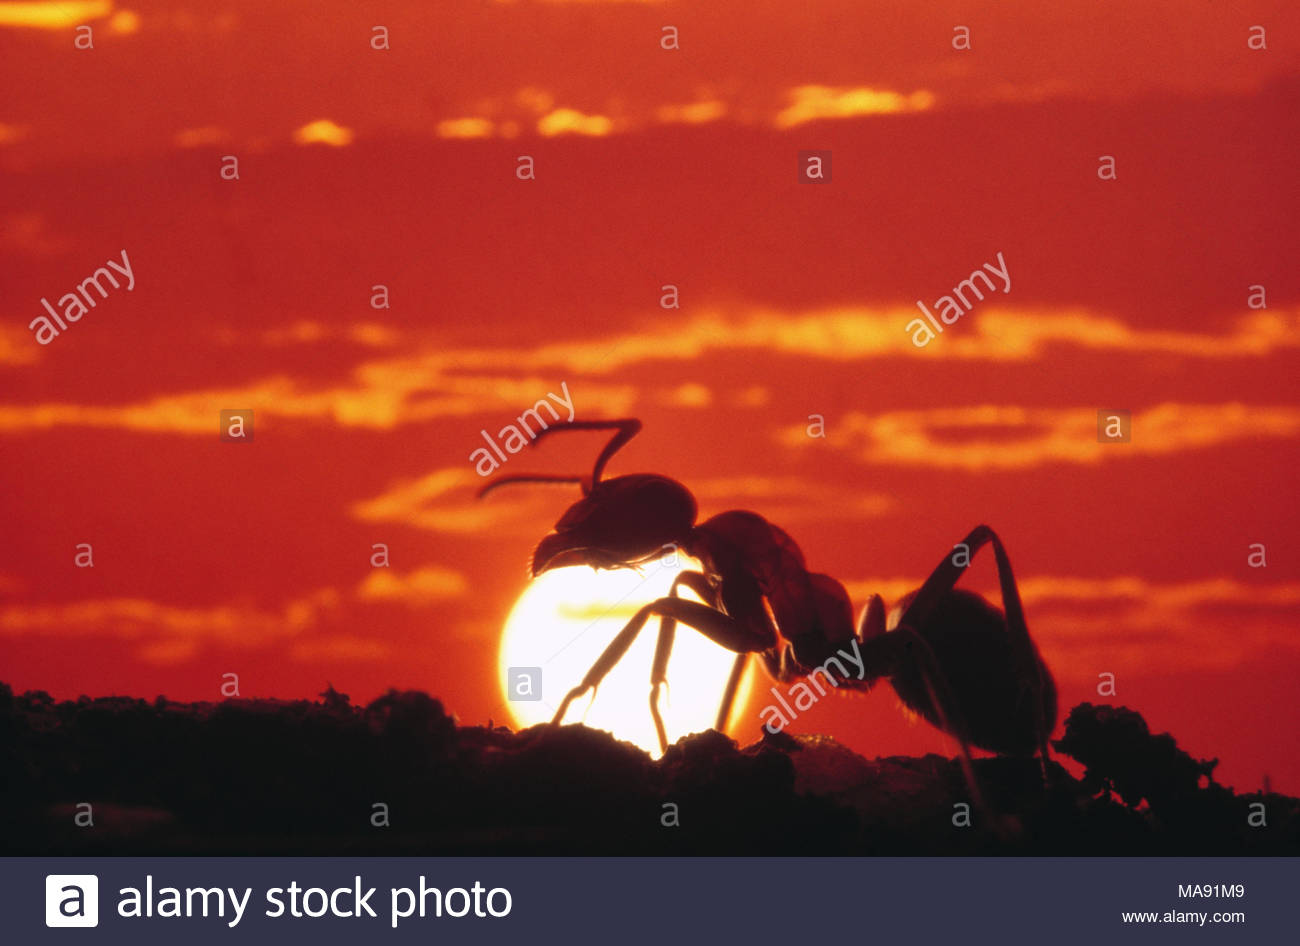 Side view close up of an ant silhouetted against the setting sun. - Stock Image